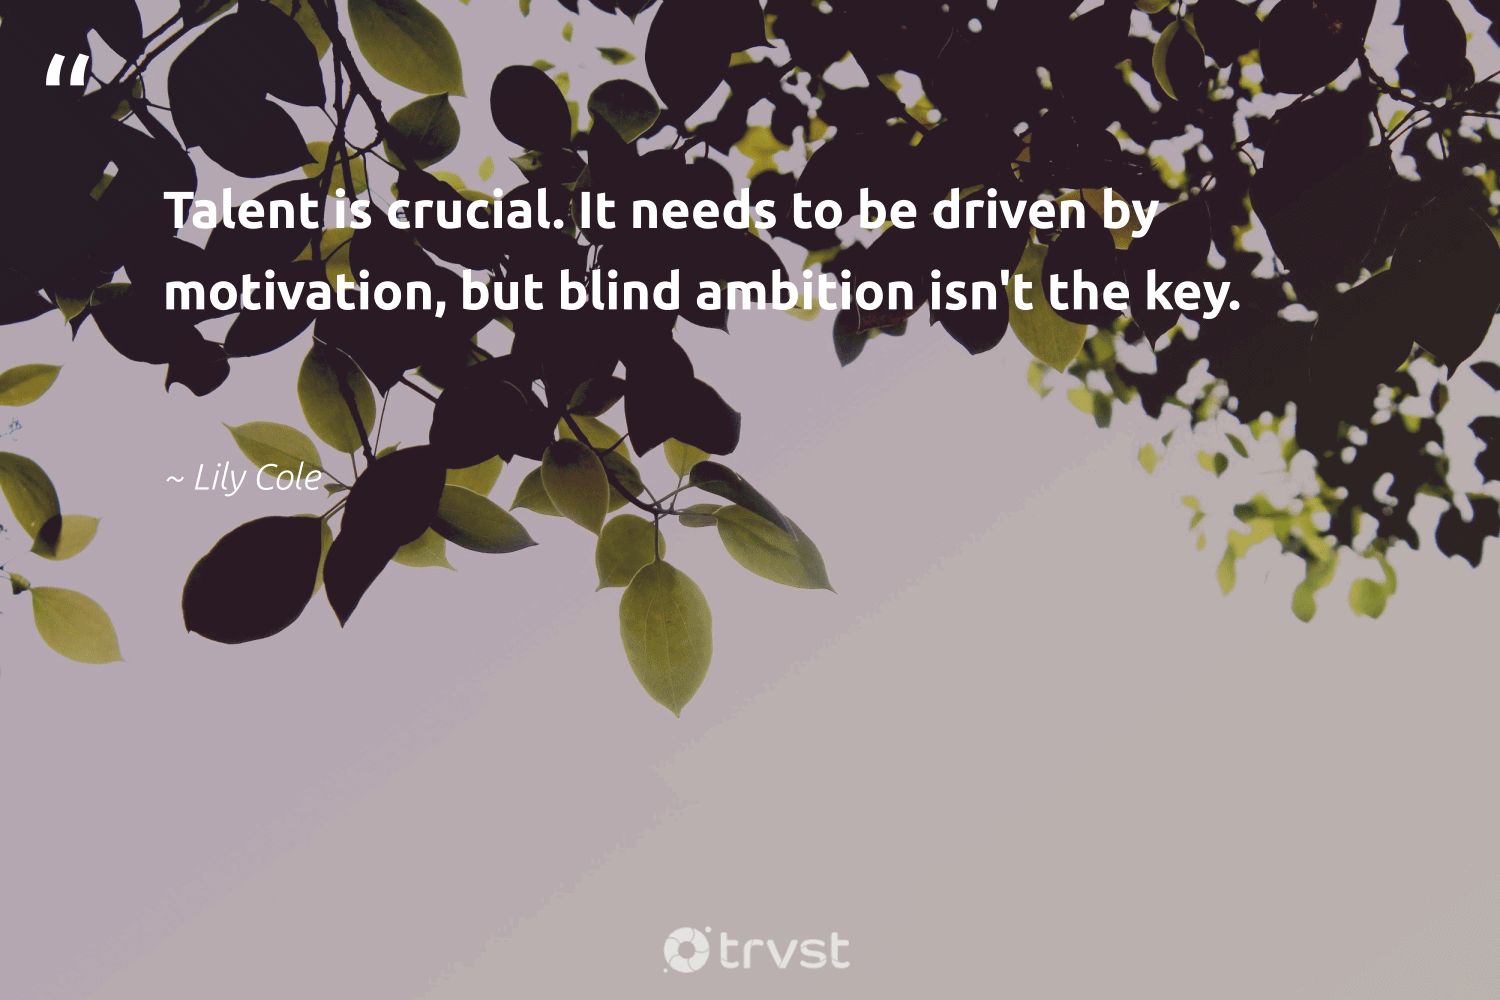 """""""Talent is crucial. It needs to be driven by motivation, but blind ambition isn't the key.""""  - Lily Cole #trvst #quotes #motivation #talent #mindful #believeinyourself #mindset #bethechange #creativemindset #youcandoit #togetherwecan #beinspired"""